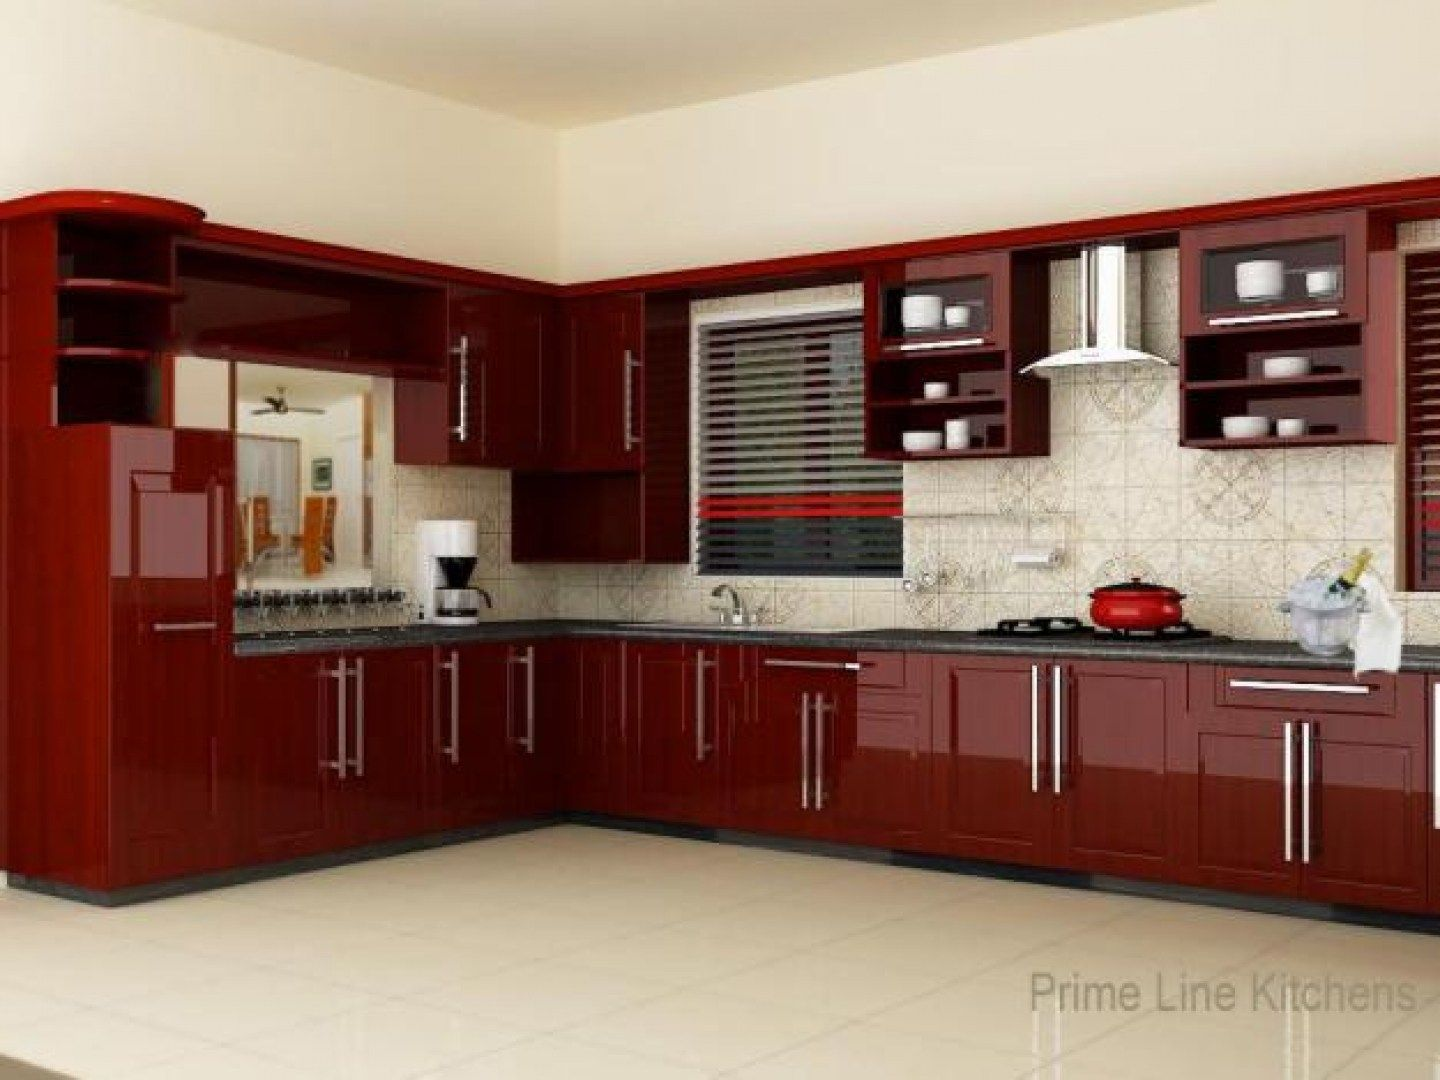 Kitchen design ideas kitchen woodwork designs hyderabad for Kitchen interior design styles